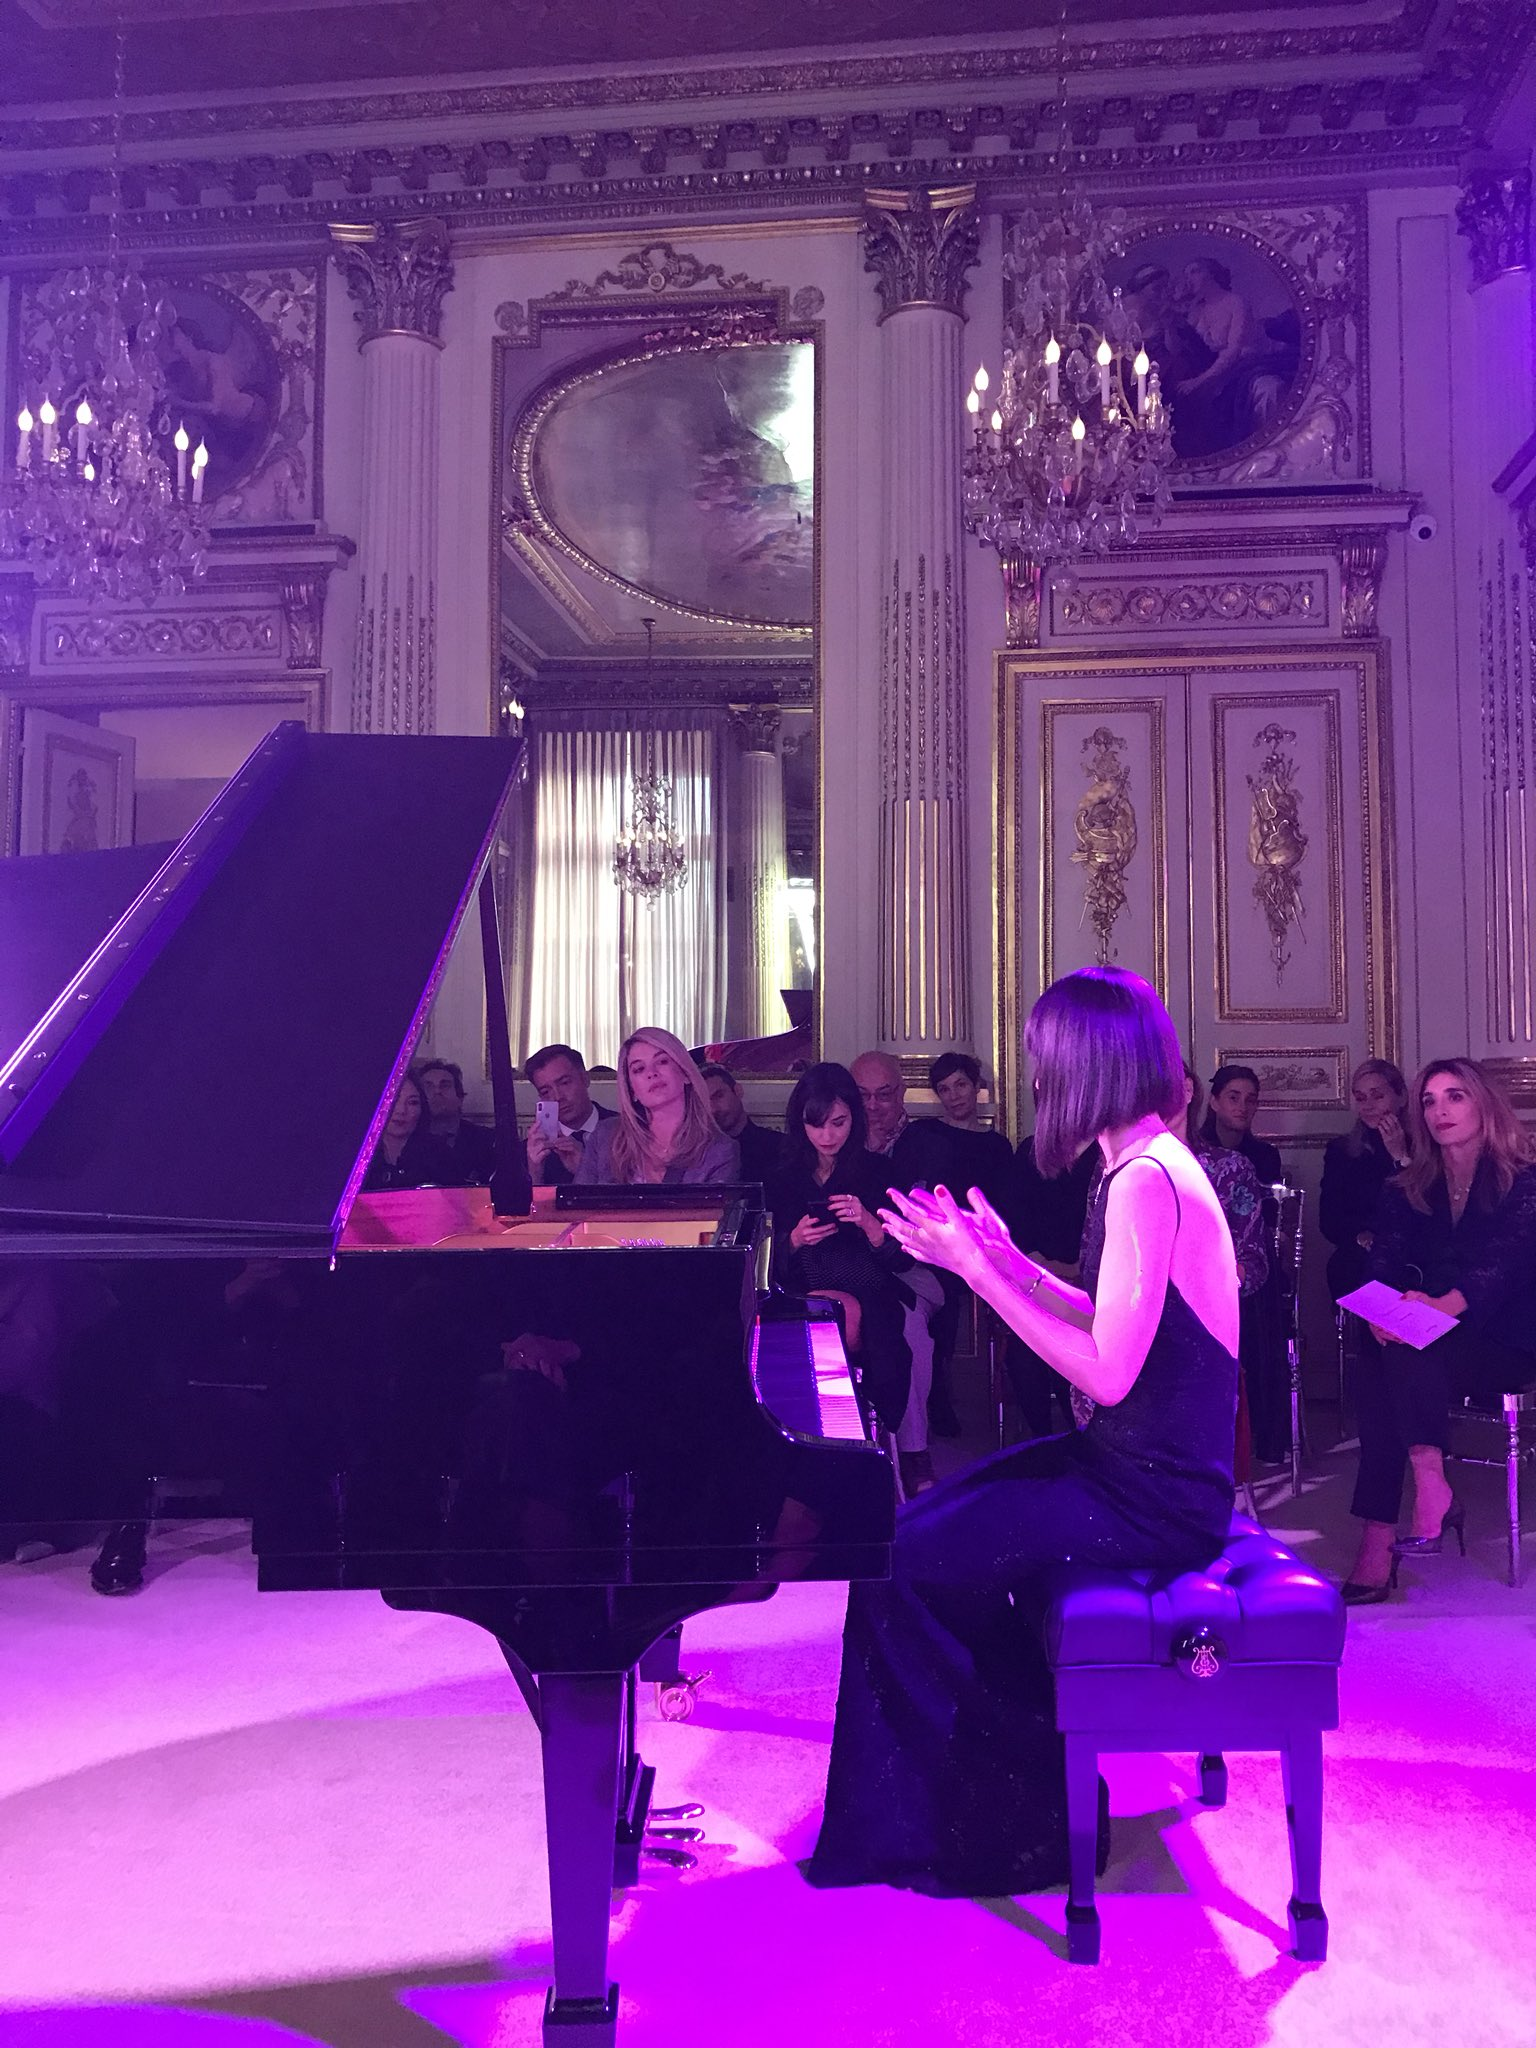 Reloaded twaddle – RT @encore_artists: Spellbinding evening with @AliceSaraOtt in the listed rooms ...